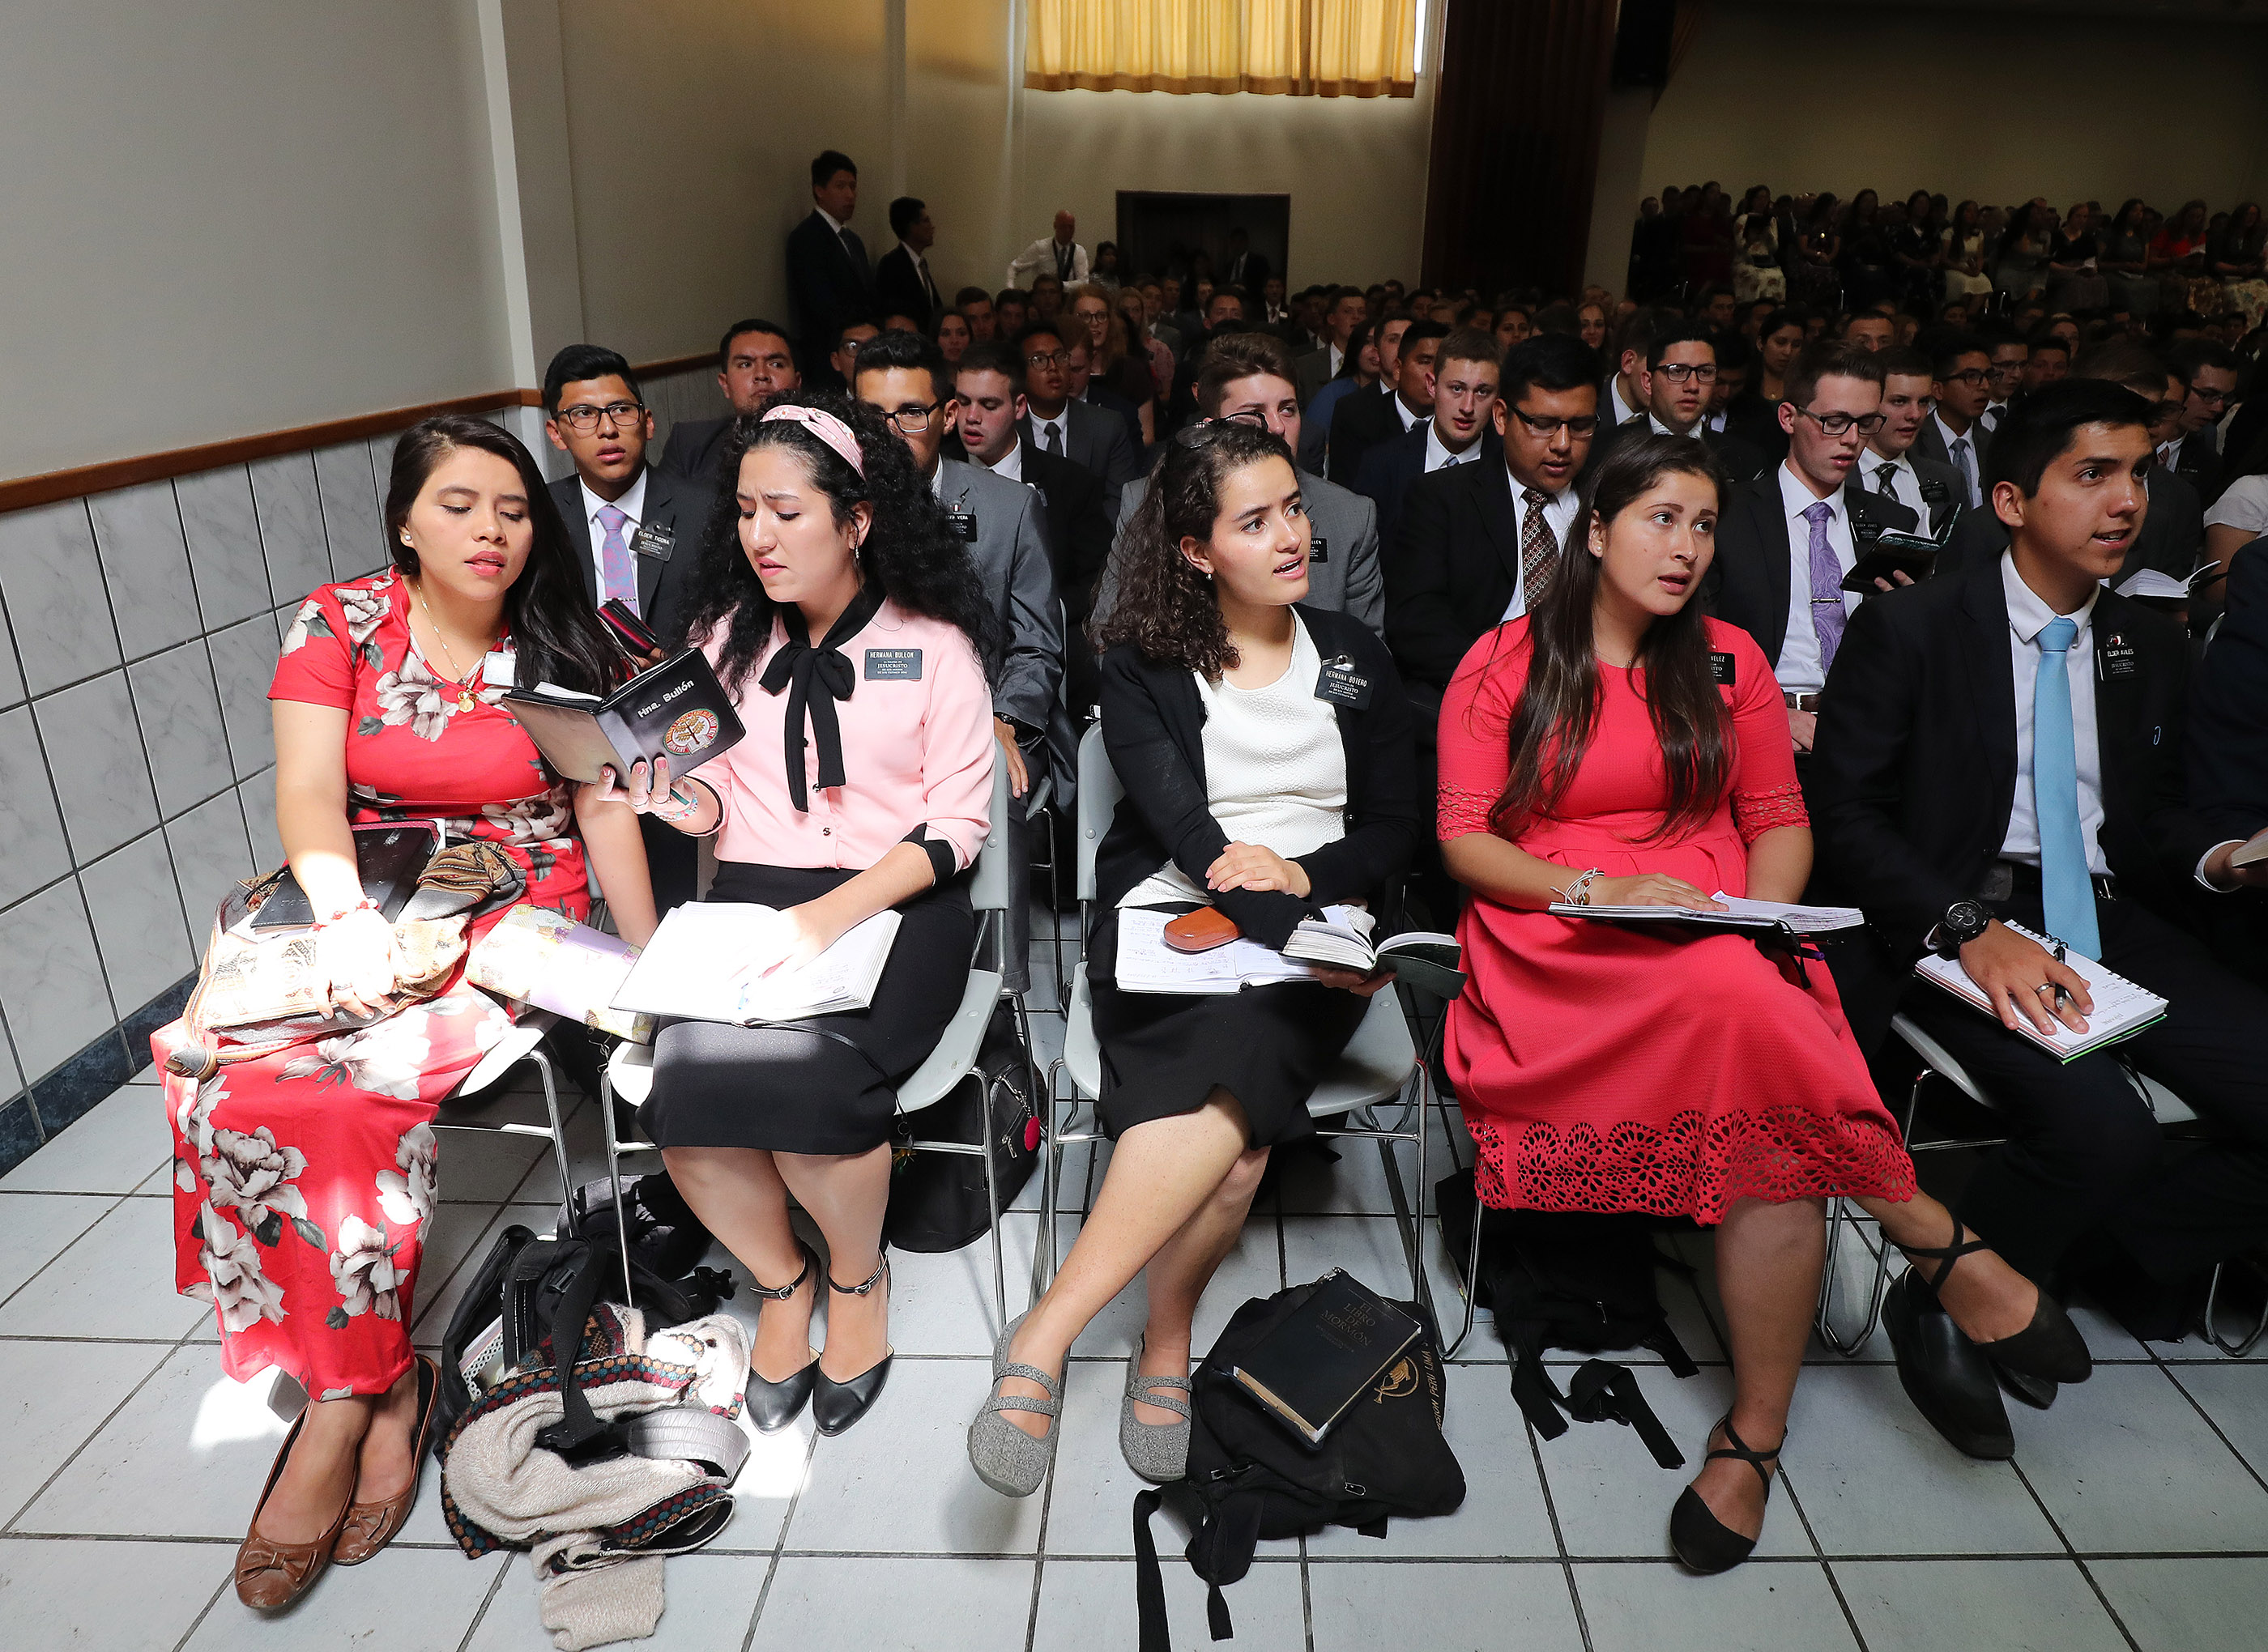 Missionaries sing during a meeting with President Russell M. Nelson of The Church of Jesus Christ of Latter-day Saints and Elder Gary E. Stevenson of the Quorum of the Twelve Apostles in Lima, Peru, on Oct. 20, 2018.